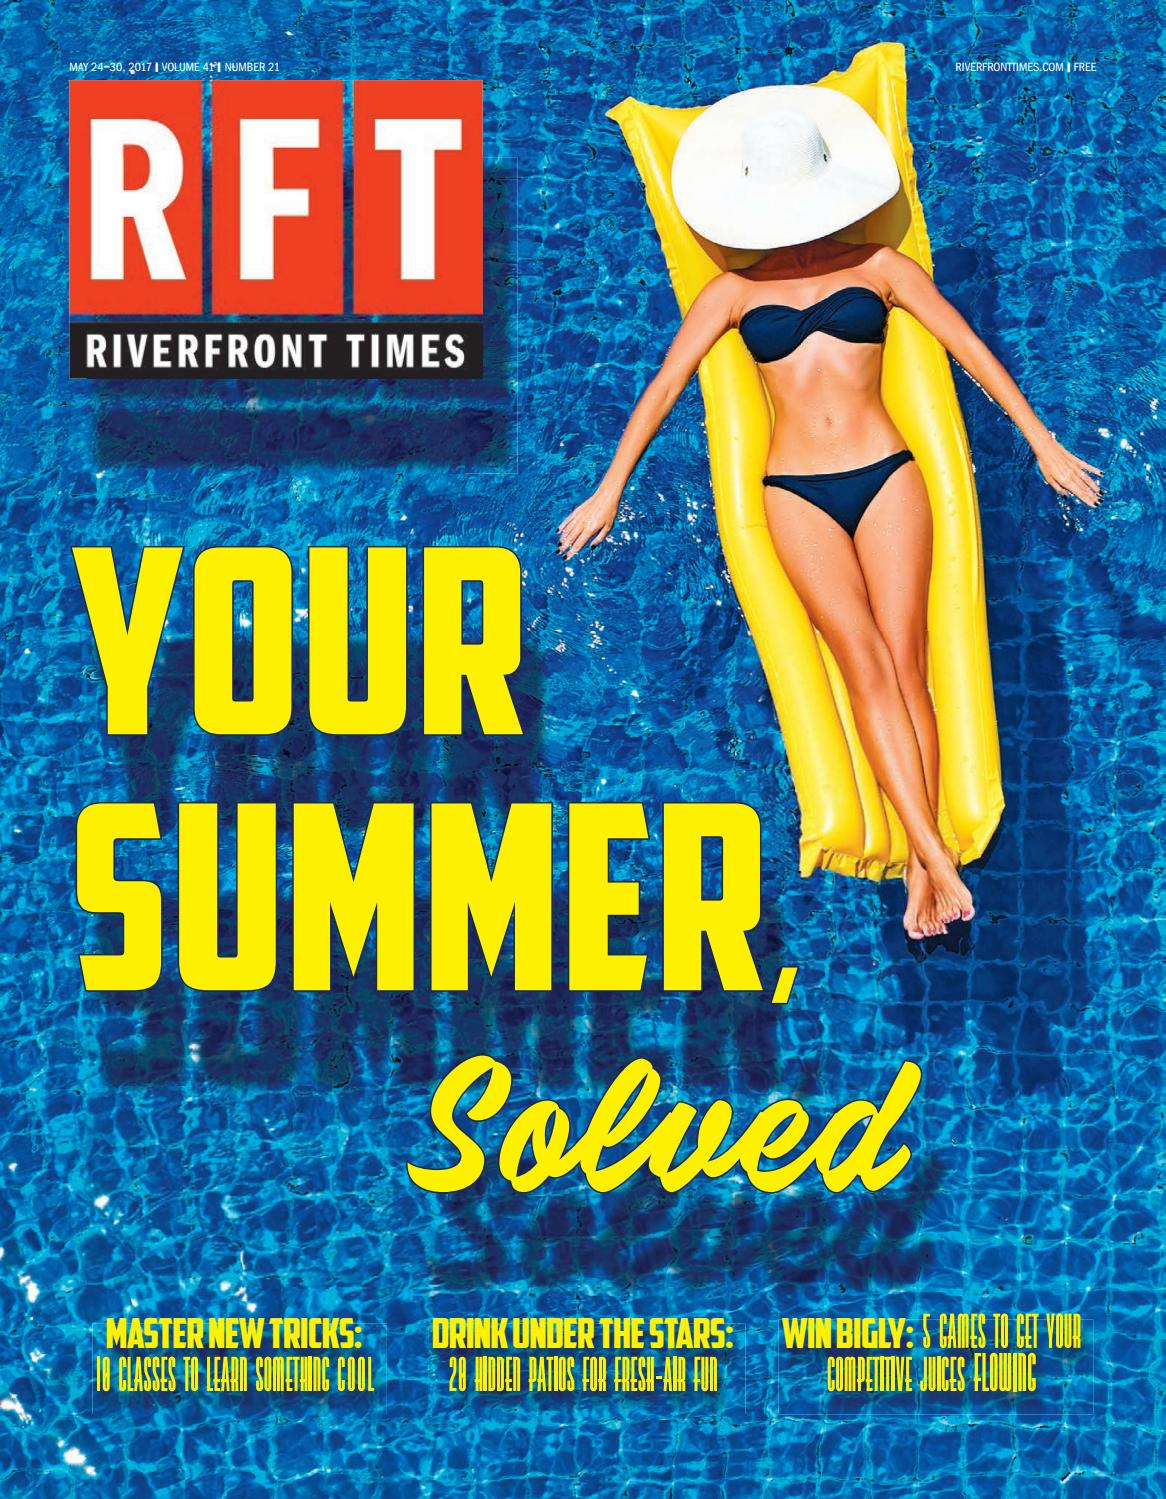 c7a618fa Riverfront Times - May 24, 2017 by Euclid Media Group - issuu